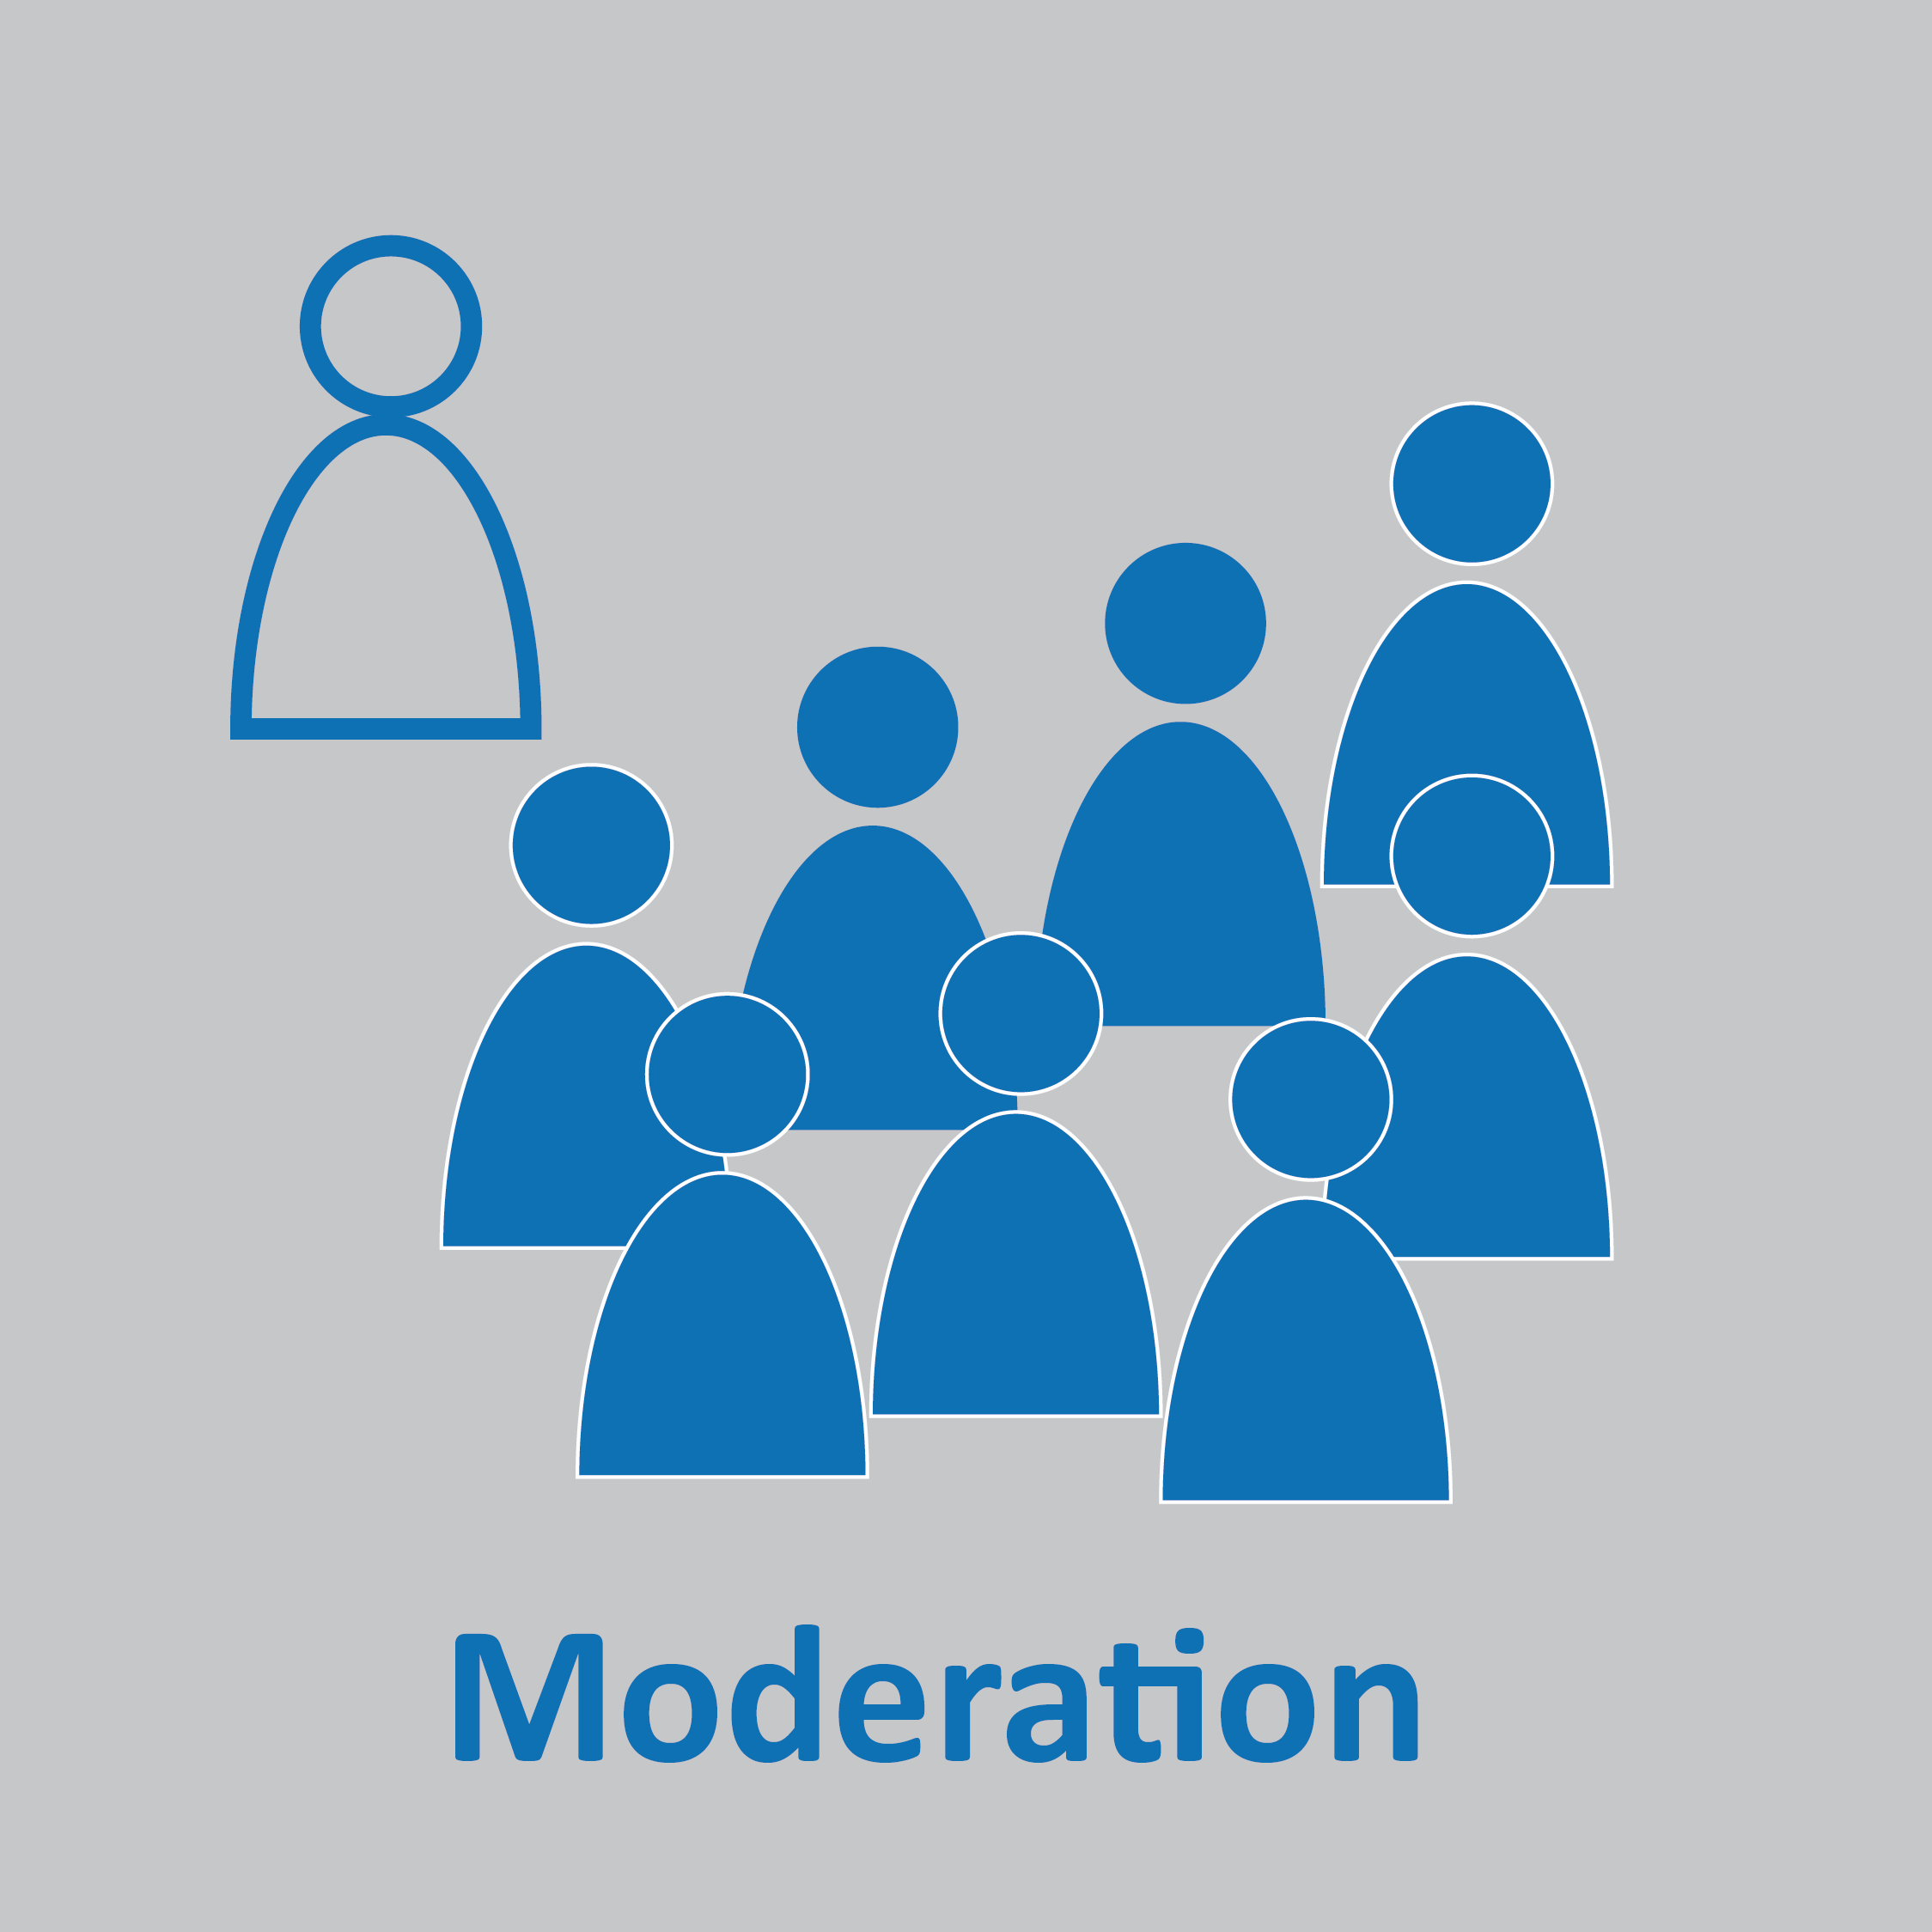 moderation (Grafik: Kathrin Weigel - kawe.media)